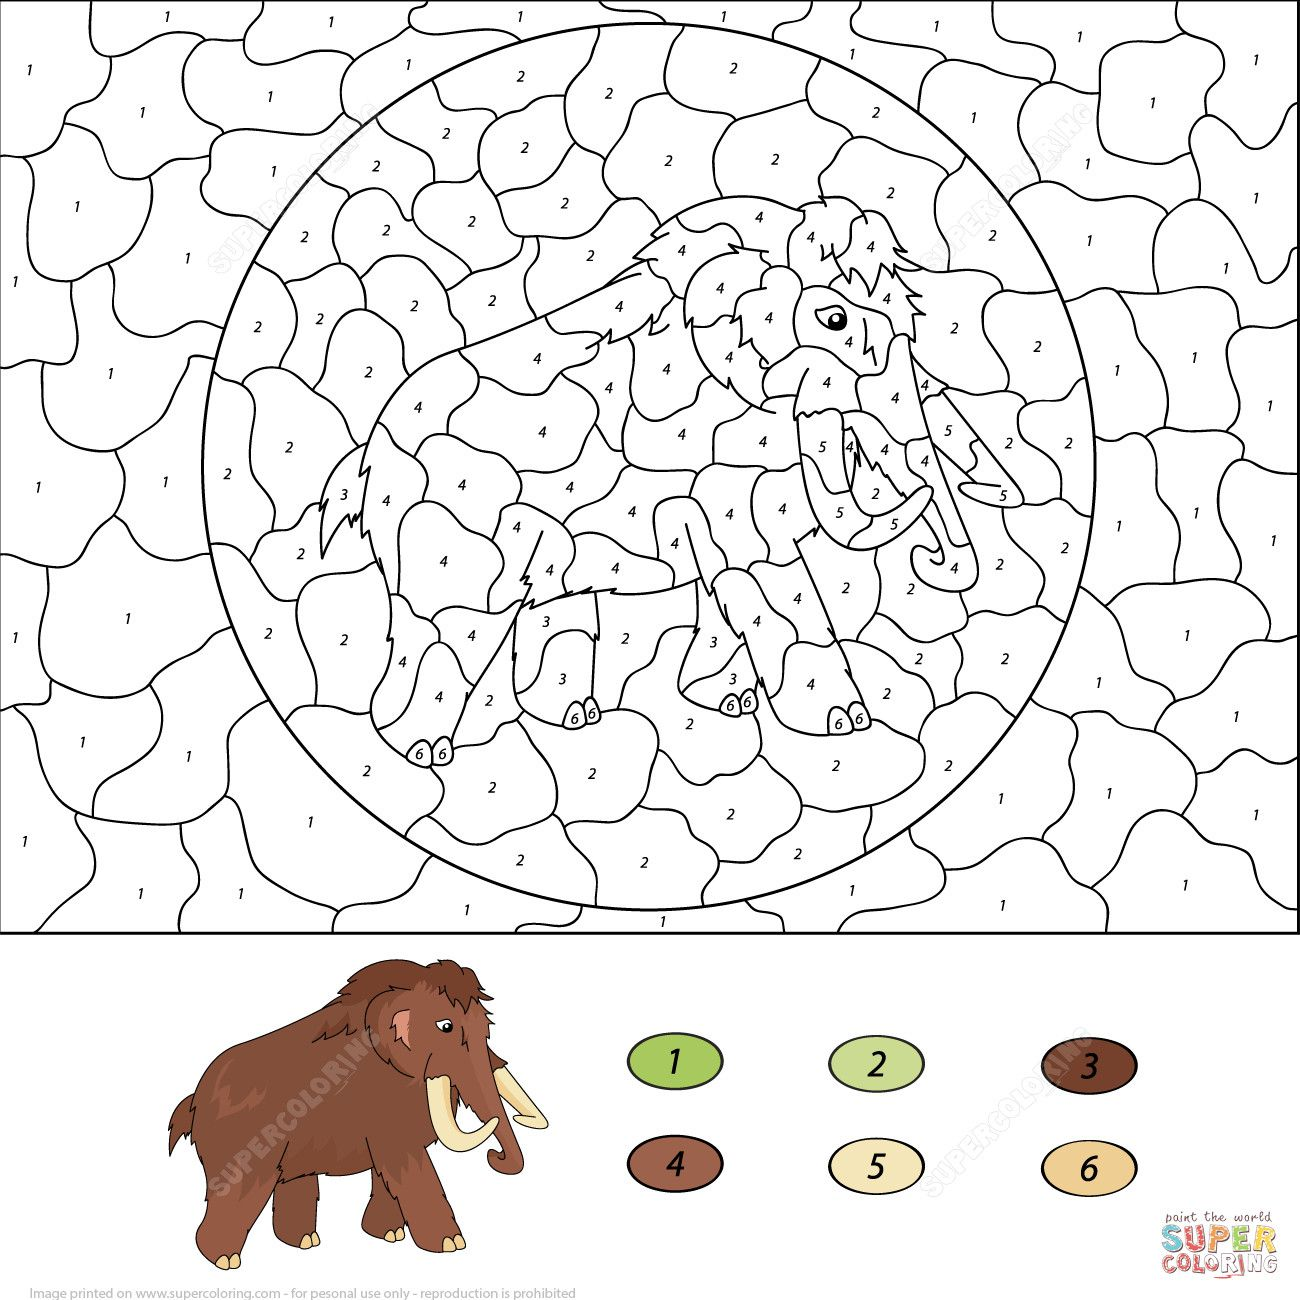 10 Images Of Woolly Mammoth Coloring Pages Coloring Images